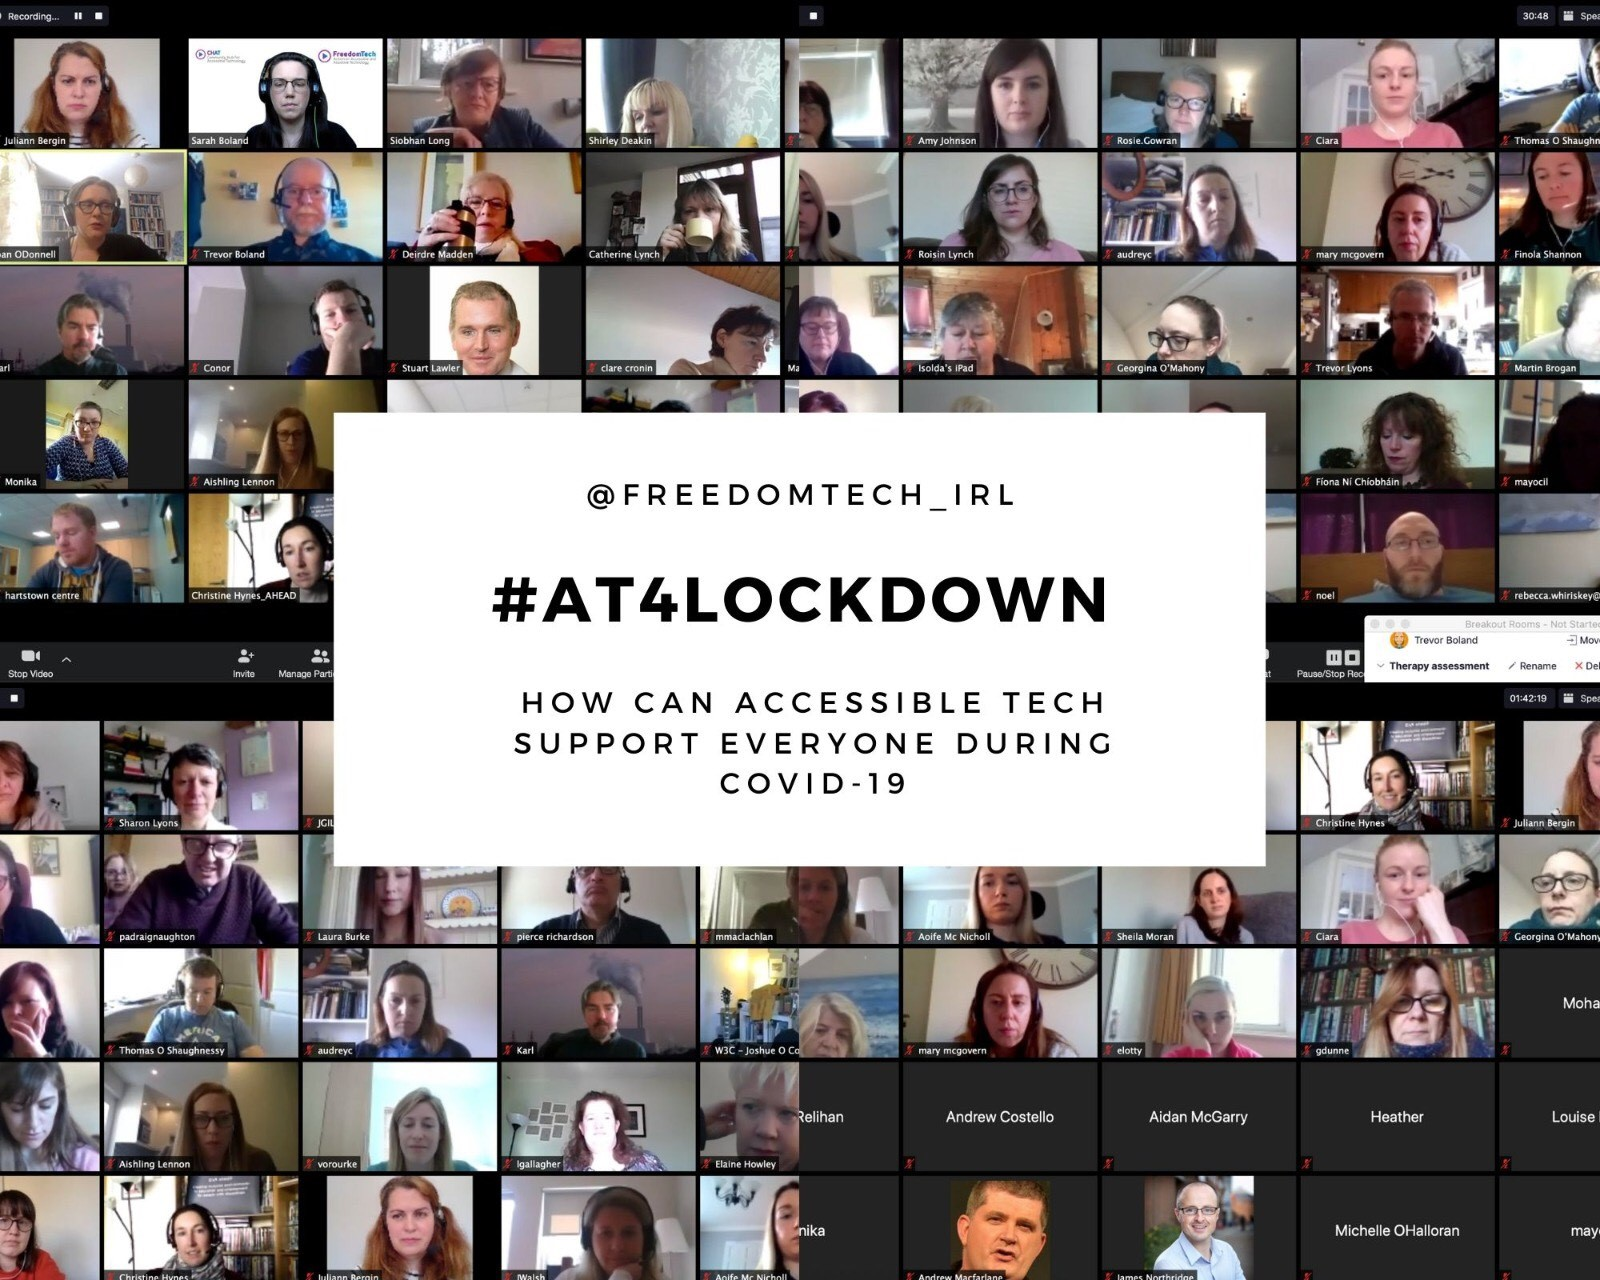 composit screenshot of zoom meeting. thumbnail shots of people at their webcams. Text in centre says: @freedomtech_irl #AT4Lockdown How can Accessible Technology Support people during the Covid-19 crisis